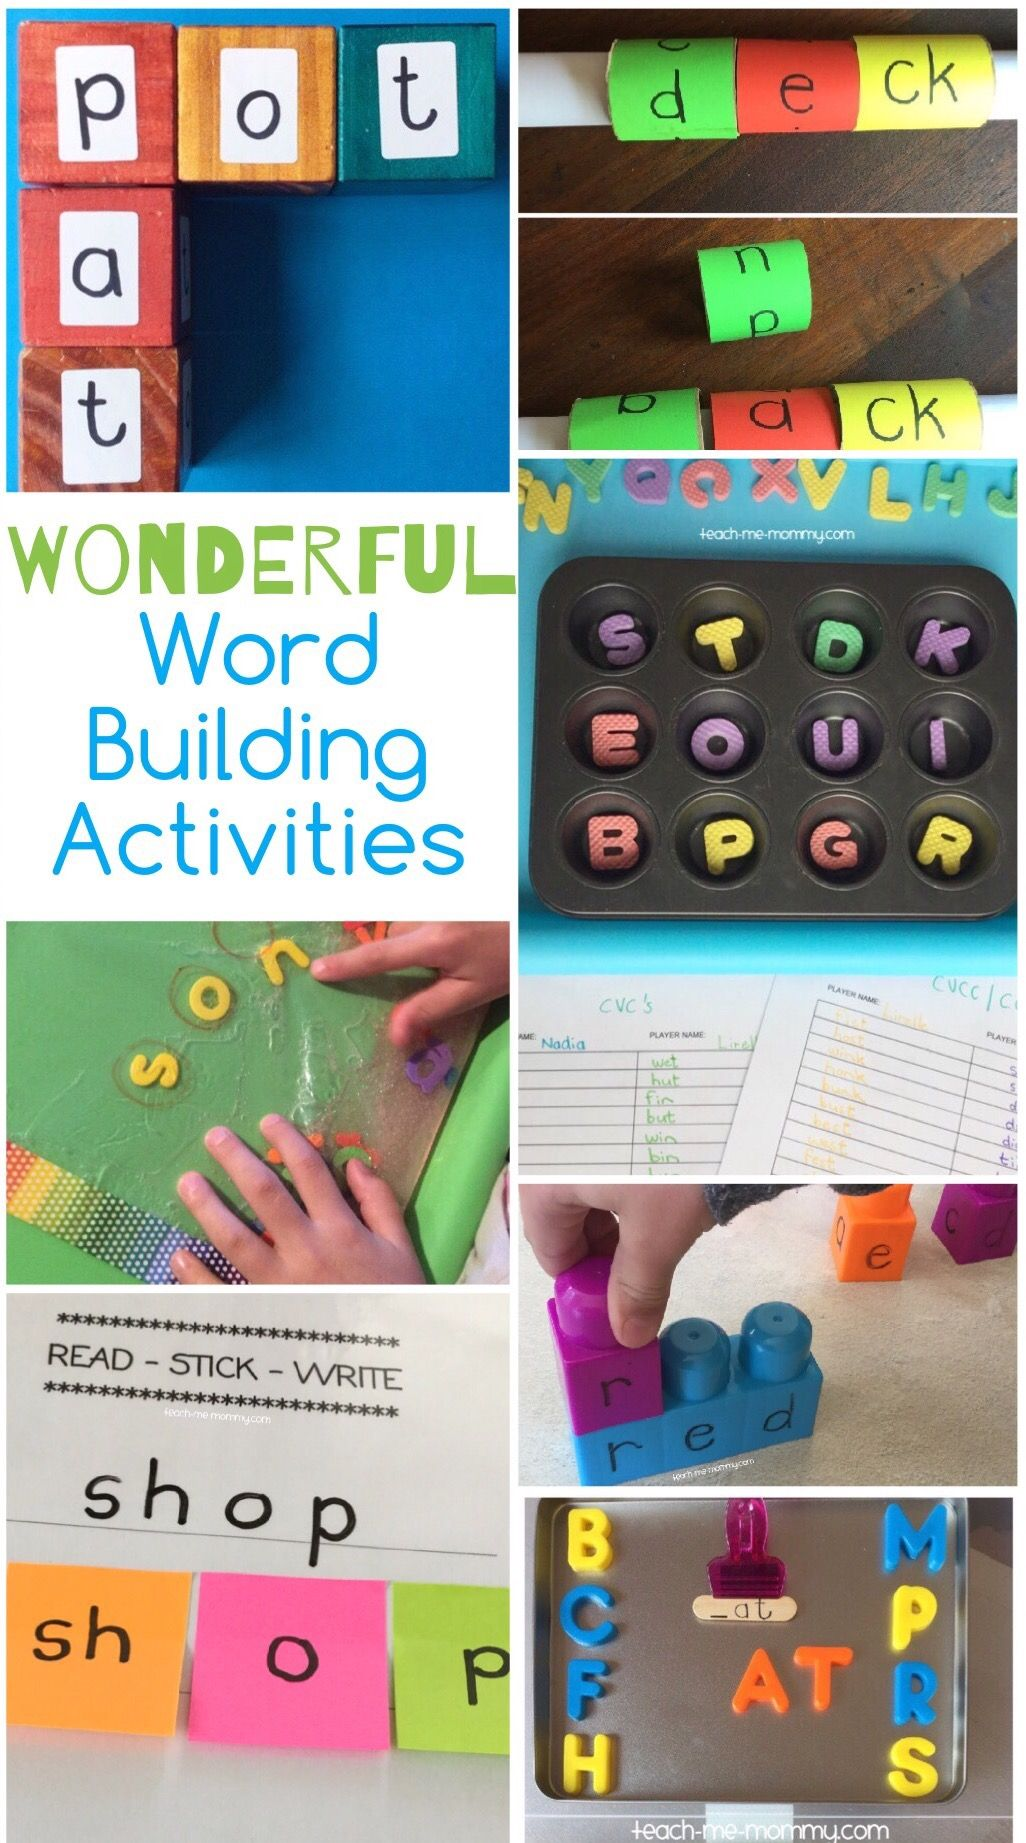 Wonderful Word Building Ideas